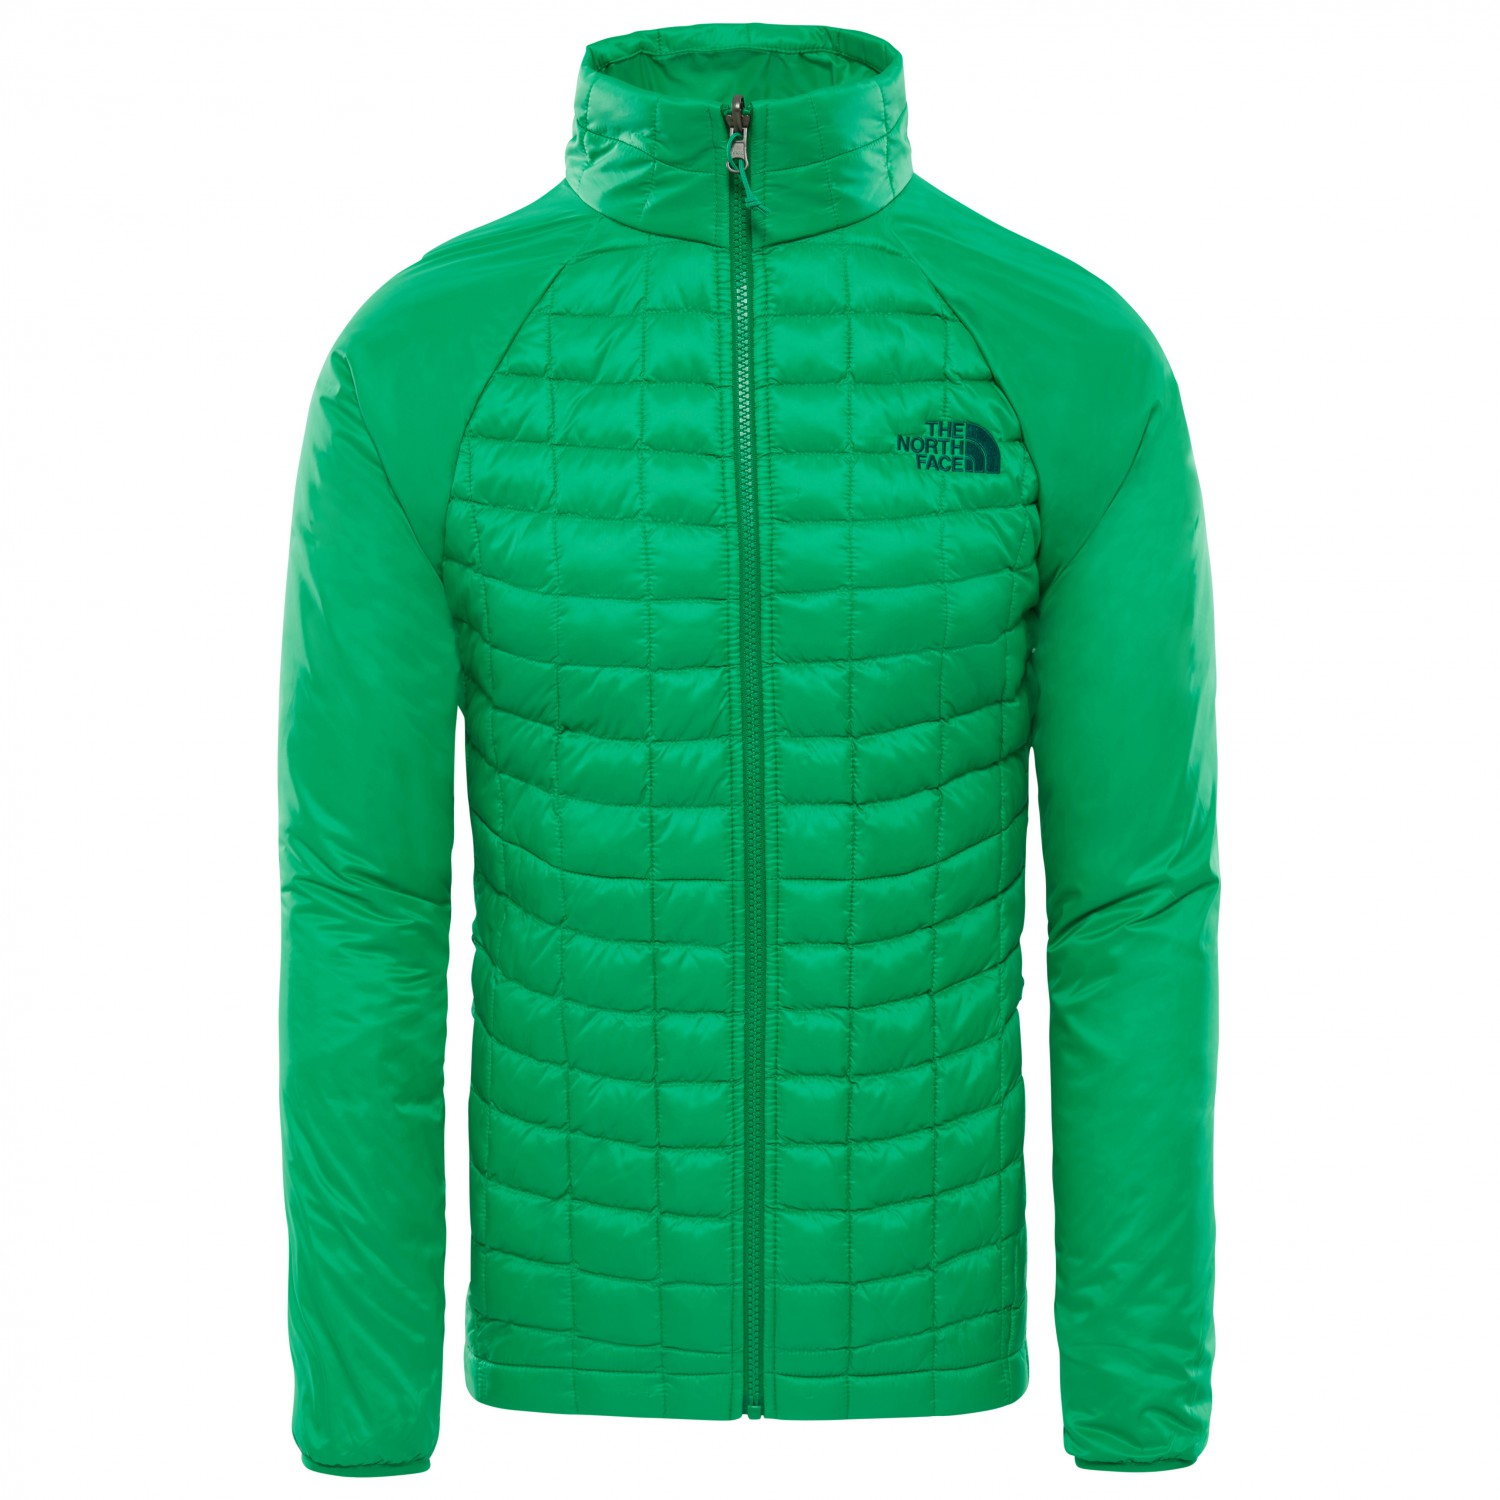 396bb036c6 ... The North Face - Thermoball Triclimate Jacket - Veste doublée ...